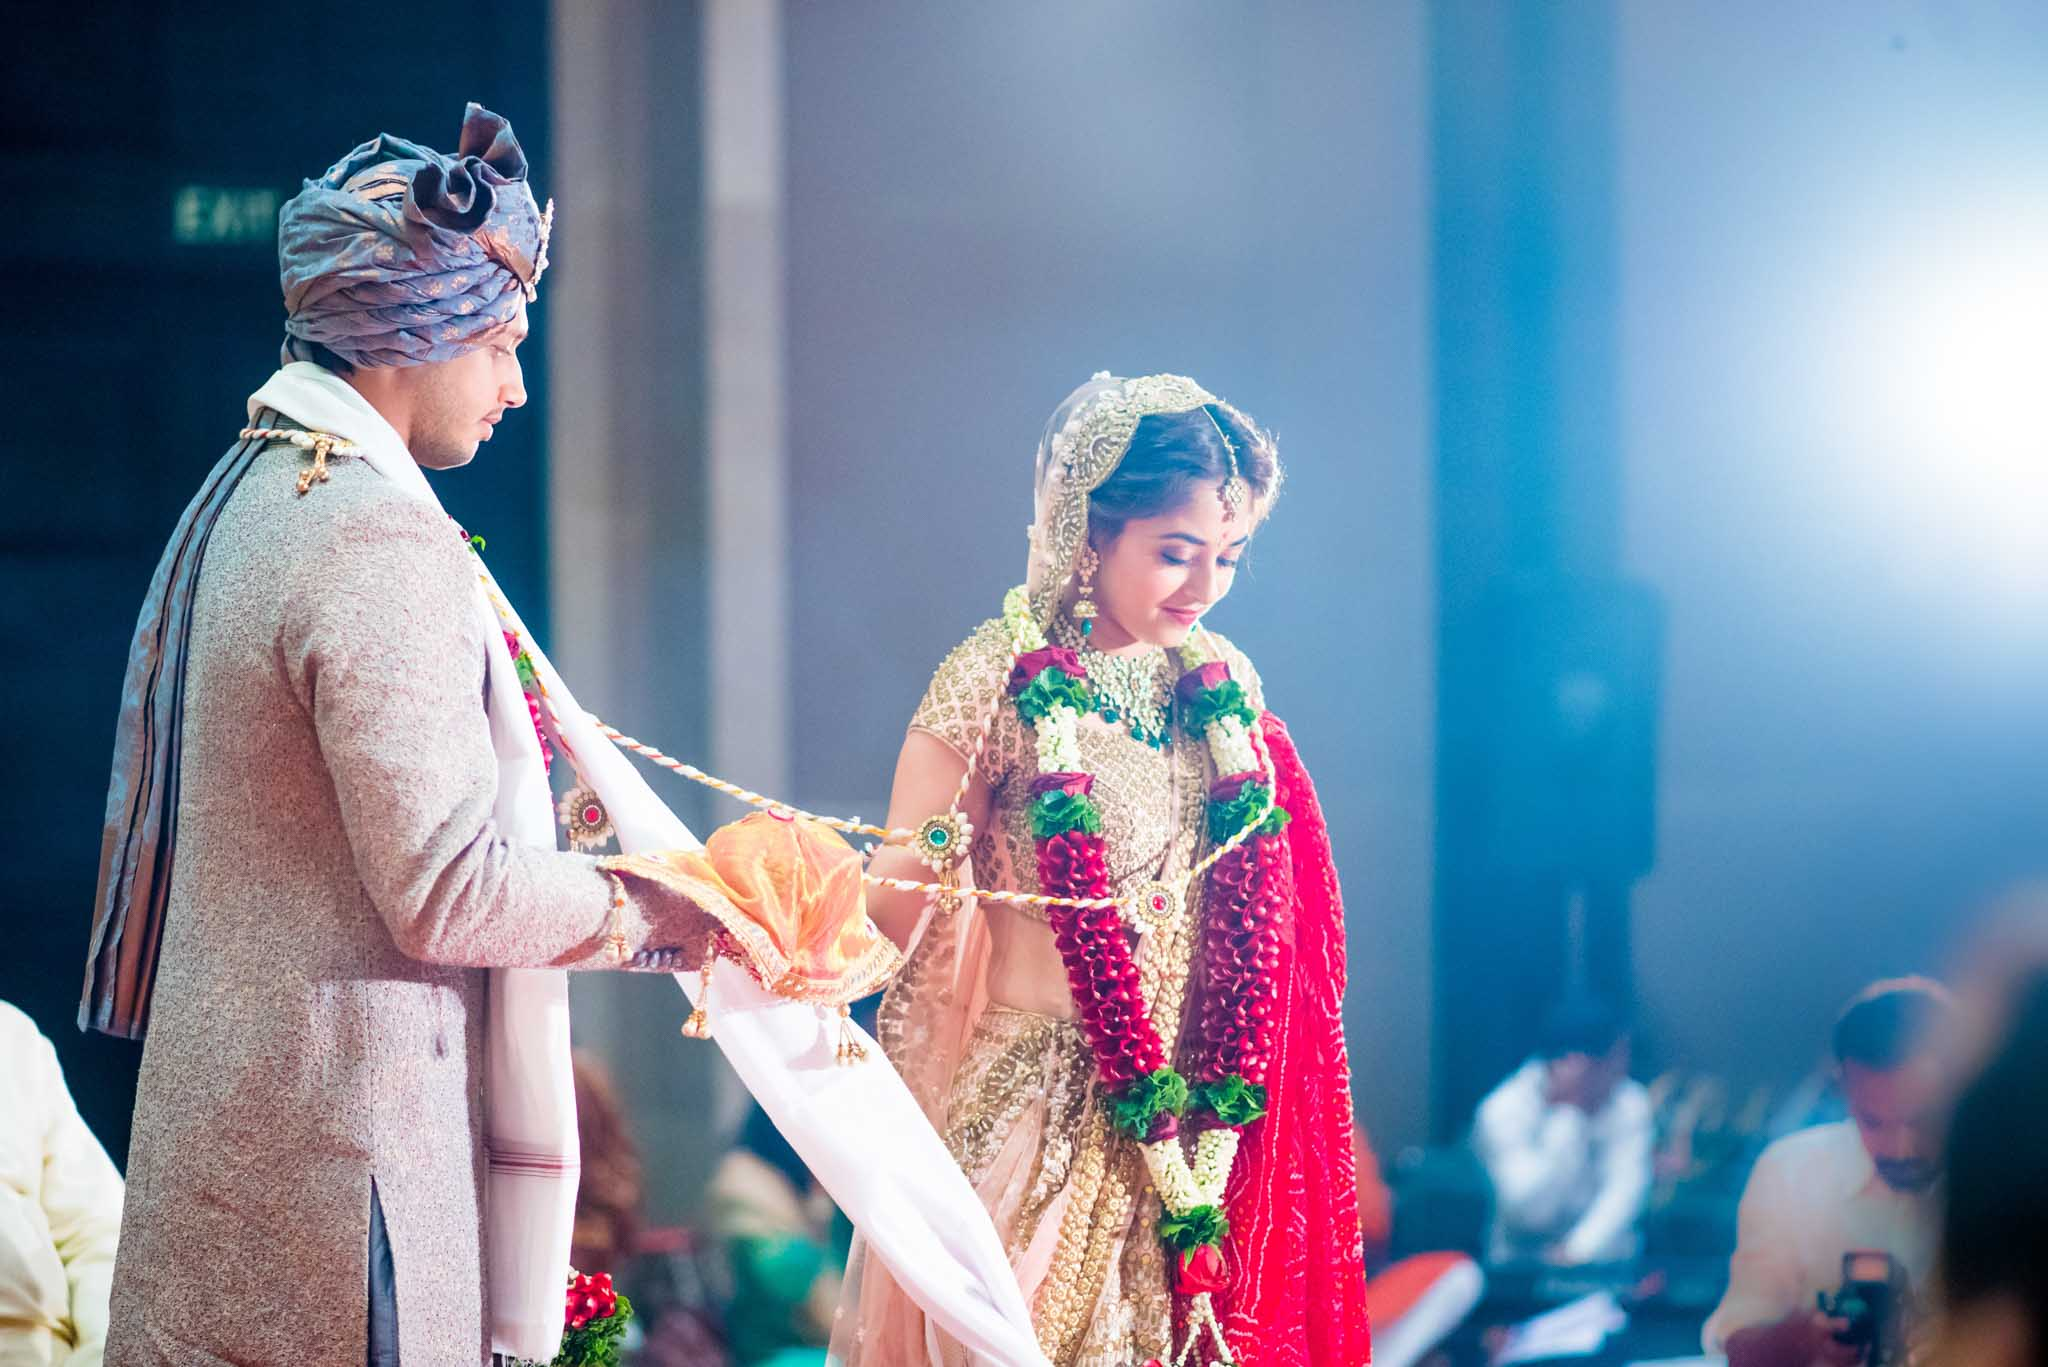 StRegis-Palladium-Mumbai-Candid-Wedding-Photography-45